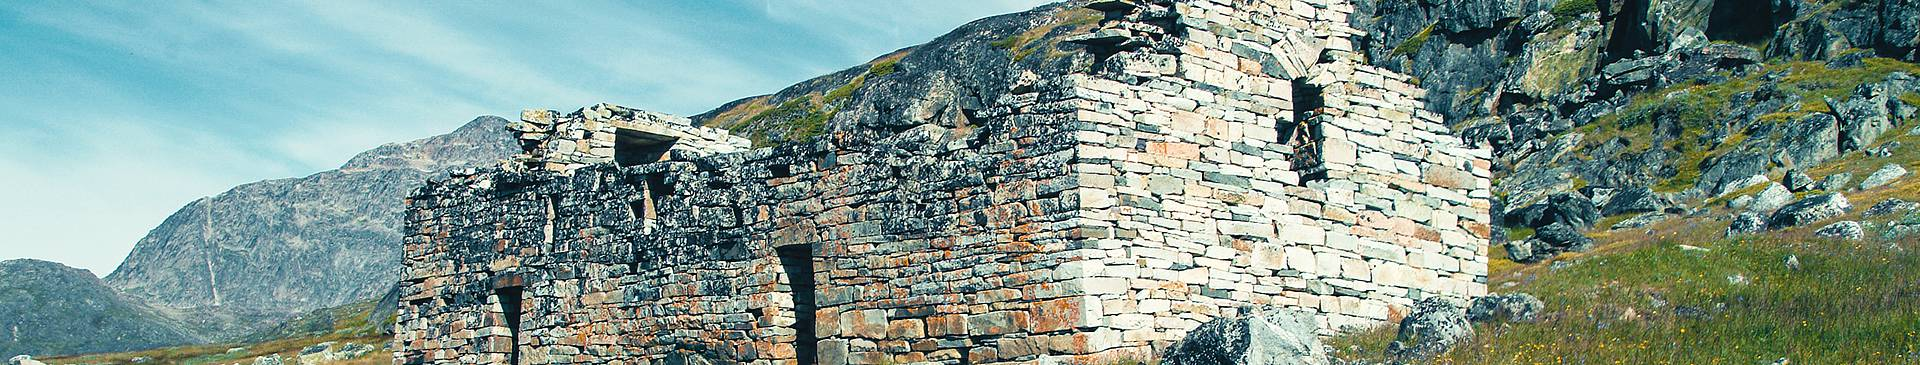 Historical sites in Greenland